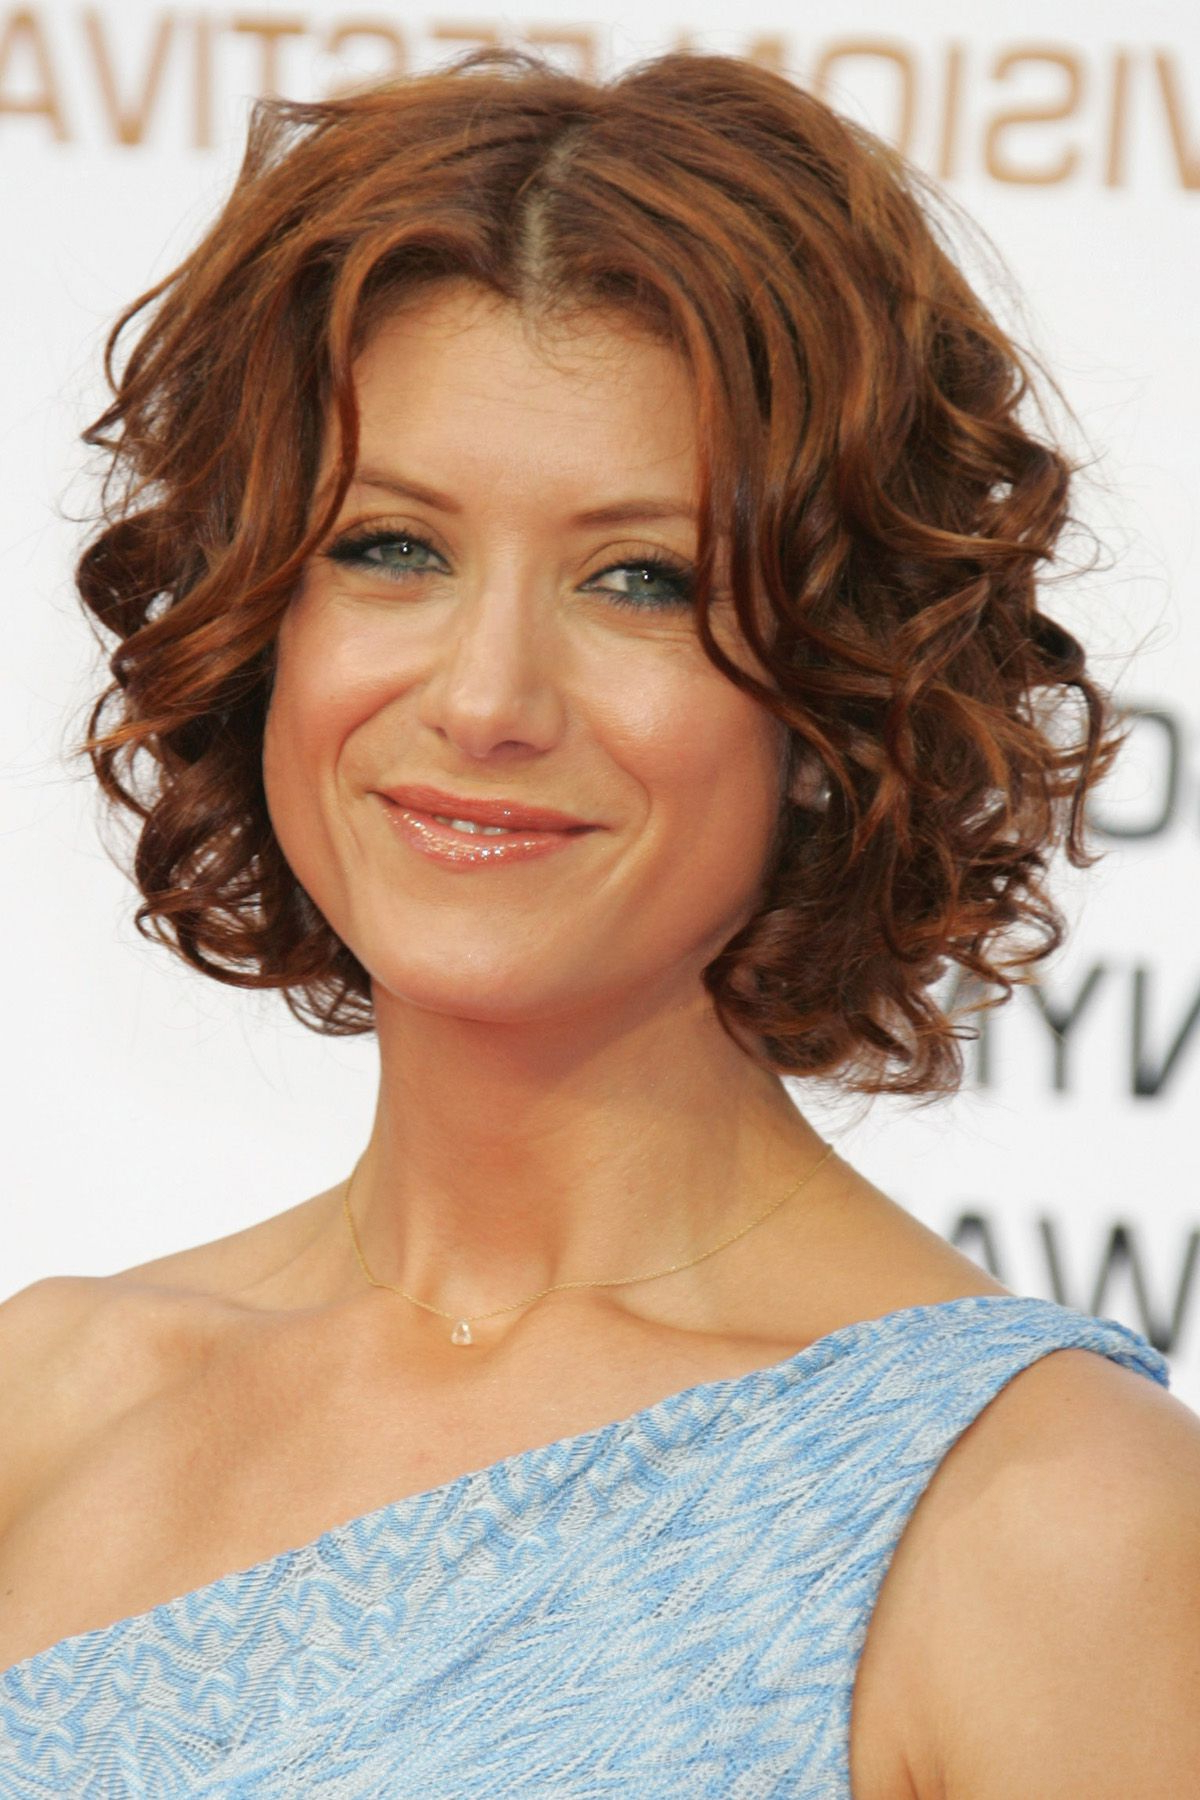 14 Best Short Curly Hairstyles For Women – Short Haircuts For Curly Hair With Low Maintenance Short Haircuts (View 3 of 25)